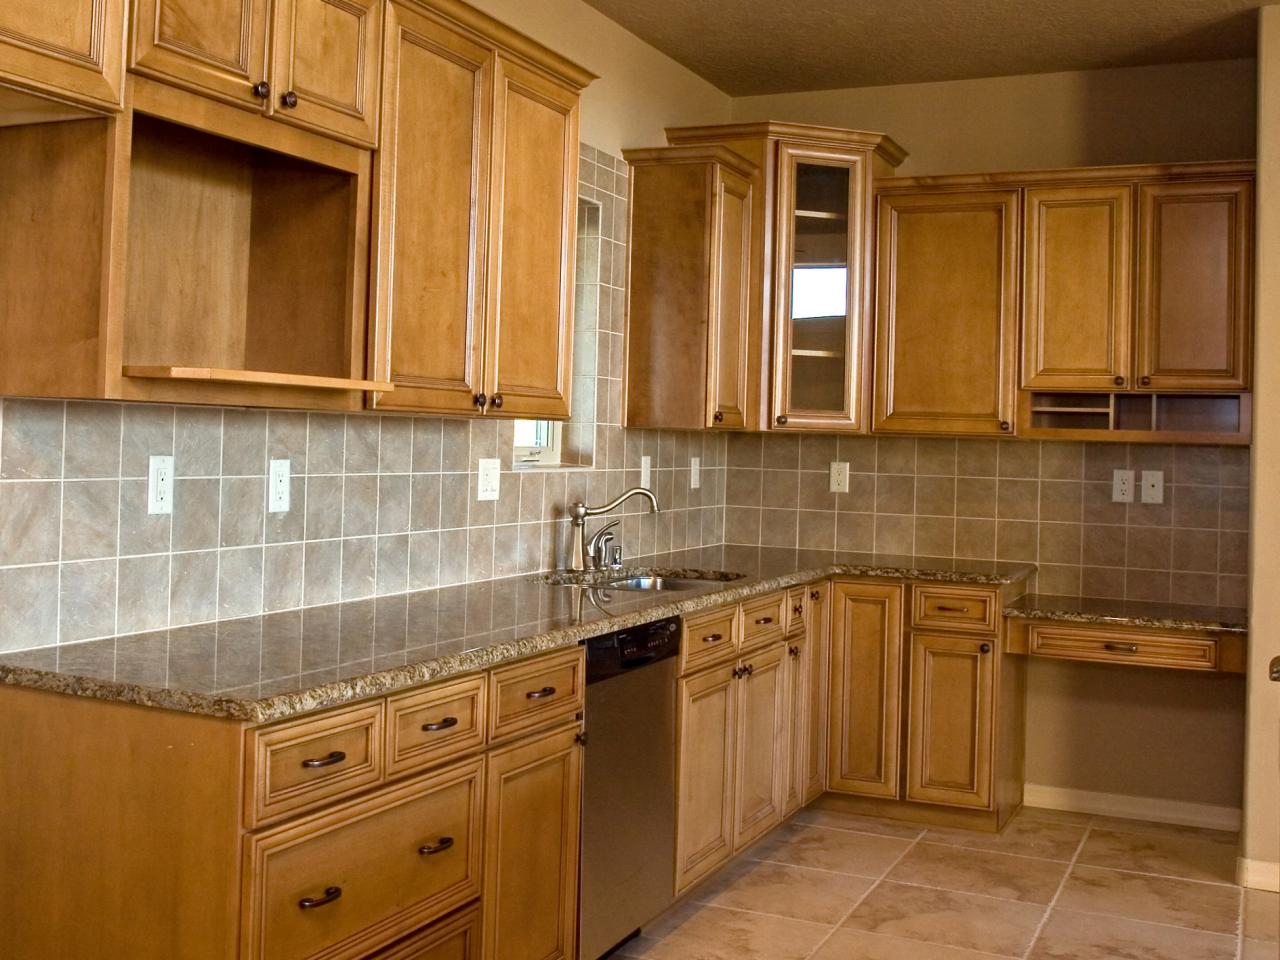 New Kitchen Cabinet Doors: Pictures, Options, Tips & Ideas ...